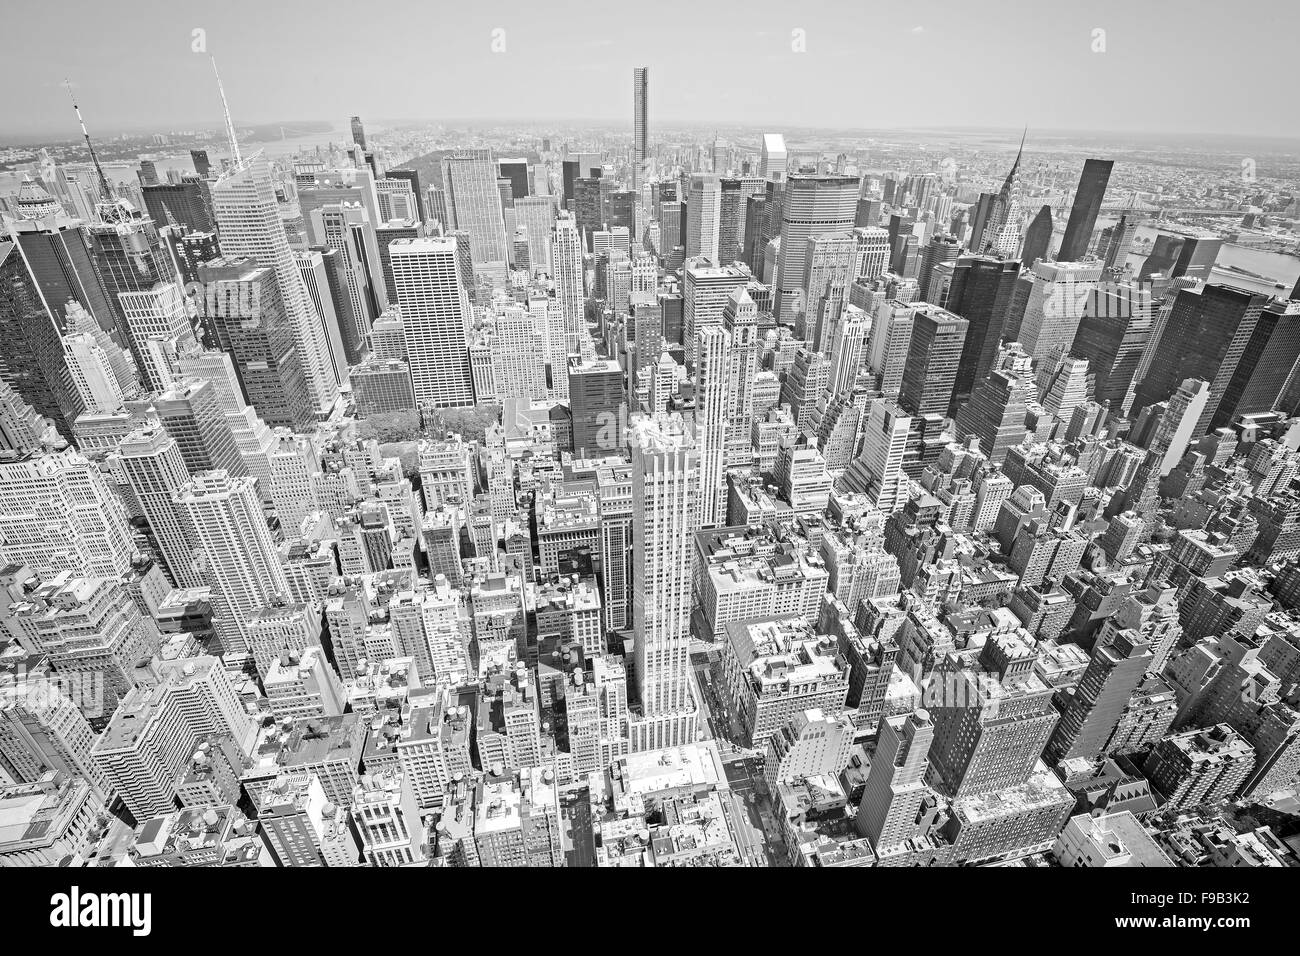 Black and white toned aerial view of Manhattan, New York City, USA. - Stock Image